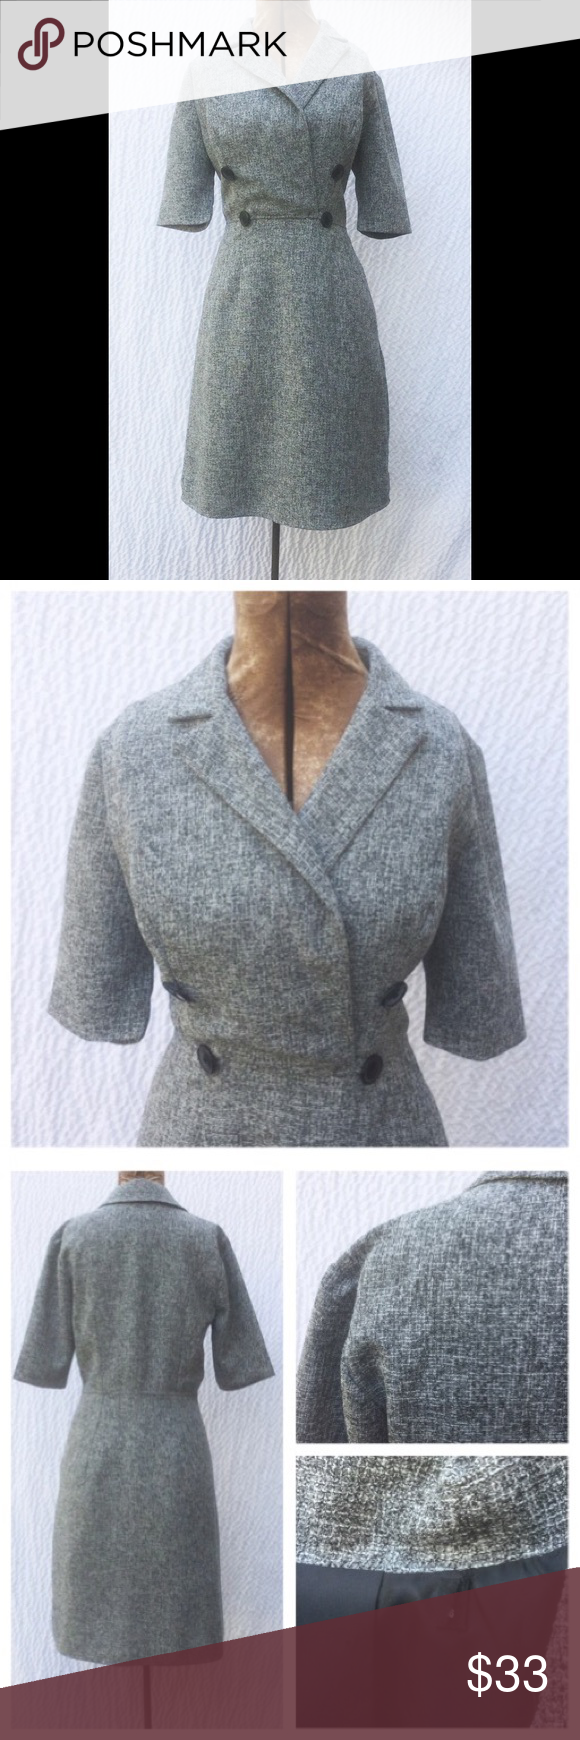 "New Eshakti Gray Suit Style Pencil Dress S 6 New Eshakti gray retro style suit dress. S 6 Measured flat: Underarm to underarm: 36"" Waist: 31 ½"" Length: 41 ½"" Sleeves: 11 ¾""  Eshakti size guide for 6 bust: 35"" Surplice cross over shirt neckline, 4 button detail, bust darts. Seamed waist, side seam pockets. Lined in polyester moss crepe. Polyester/rayon/spandex, textured suiting fabric. Machine wash New w/ cut out Eshakti tag to prevent returning to Eshakti eshakti Dresses"